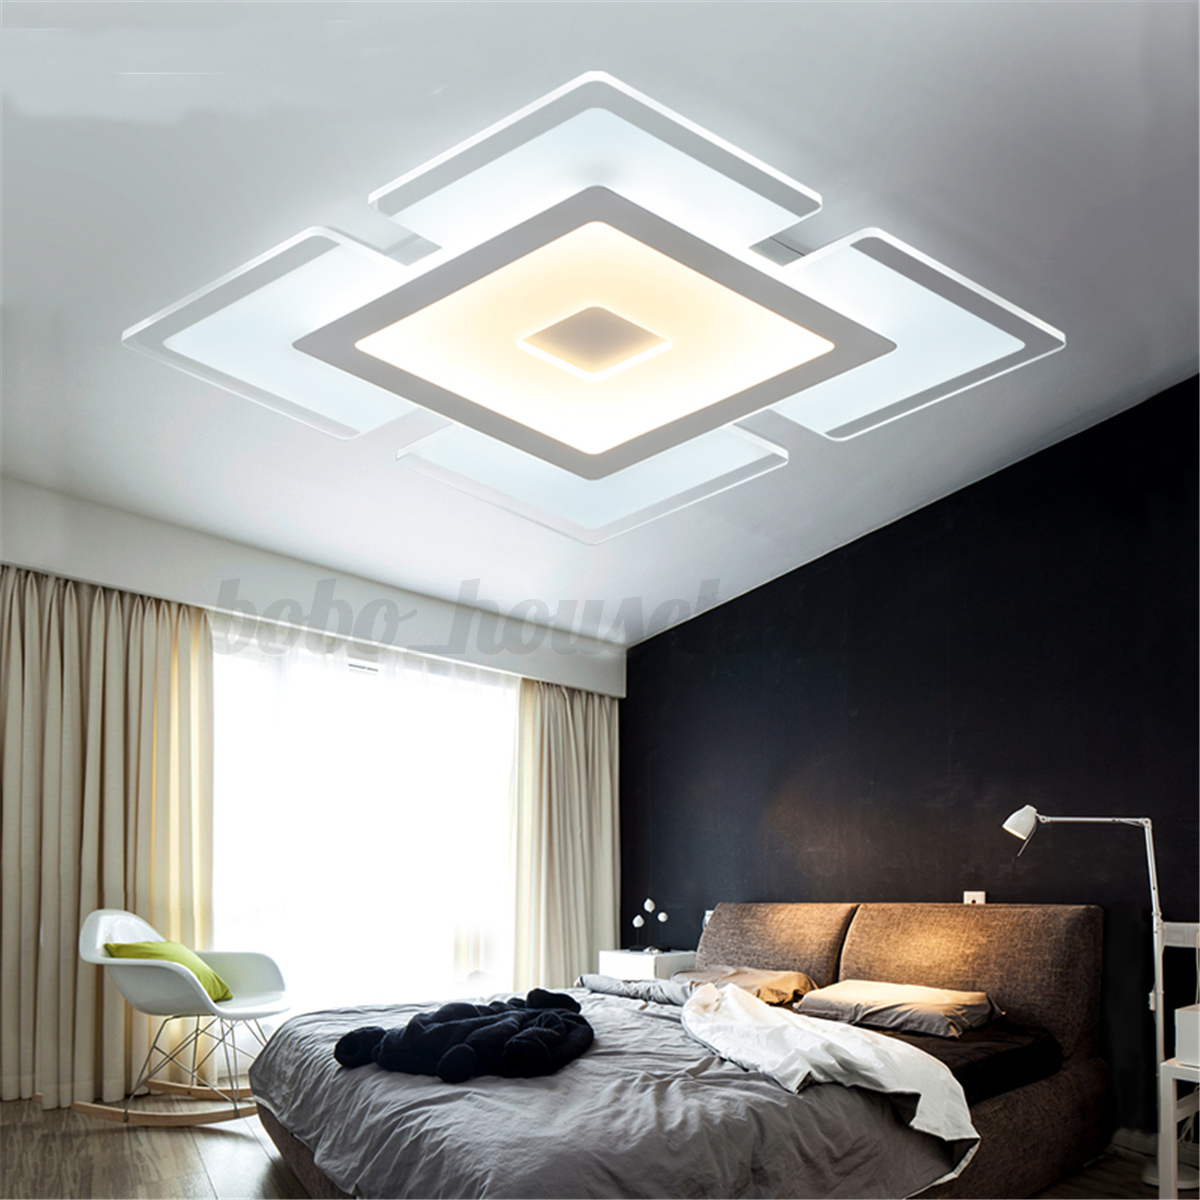 Modern simple square acrylic led ceiling light living room bedroom home lamp ebay - Colors for modern living room chromatic vitality ...